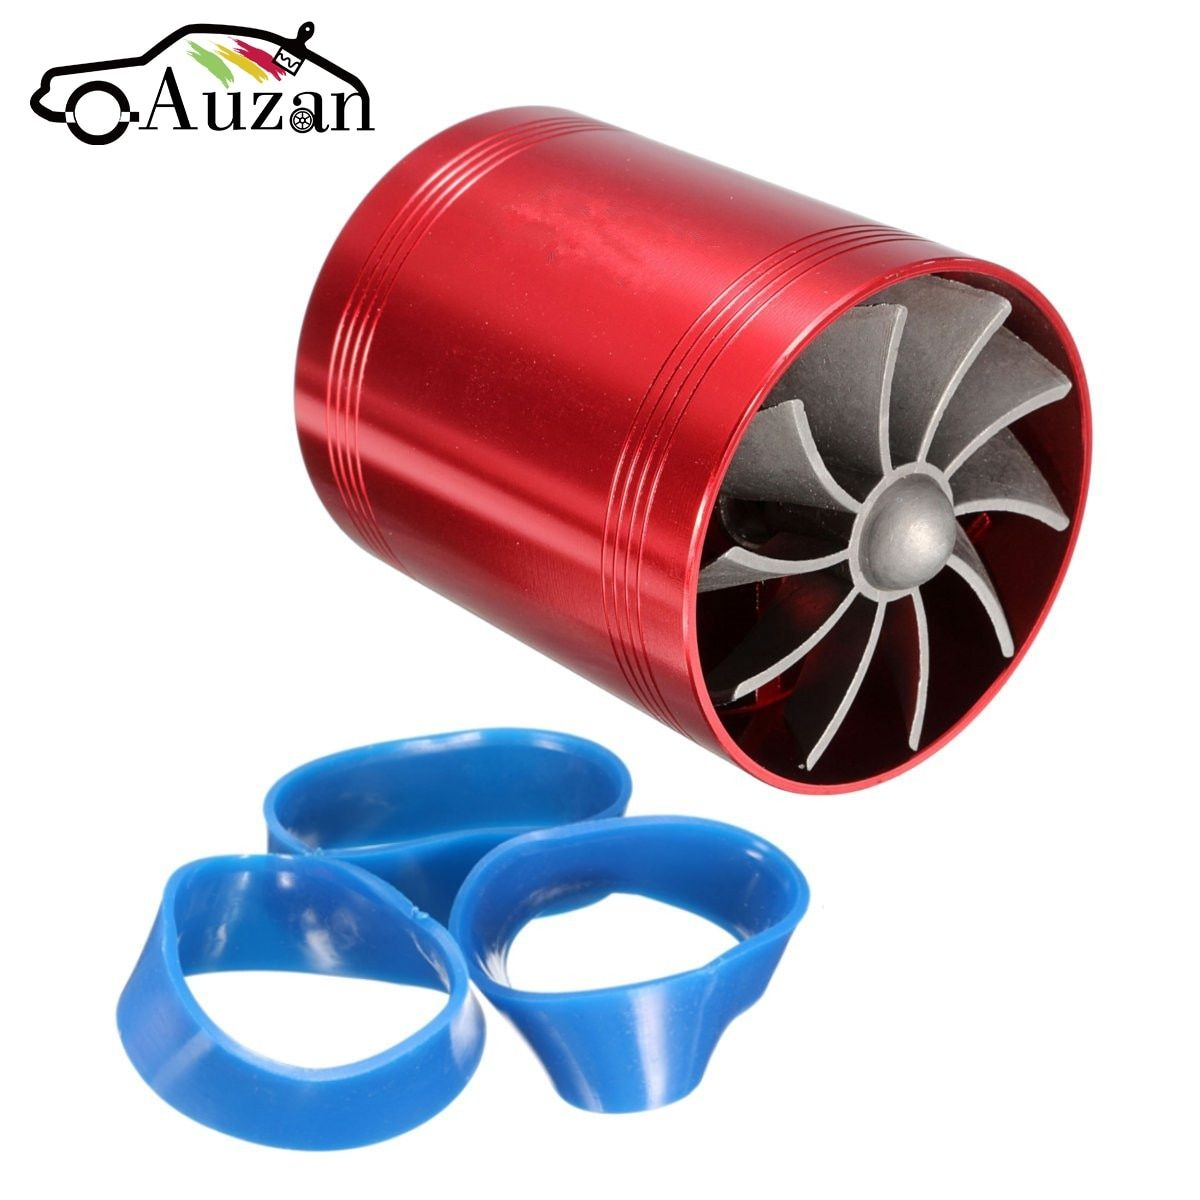 Car Turbo Supercharger Universal Air Intake Dual Fan Turbonator Gas Fuel Saver Red/Chrome Aluminum High Quality